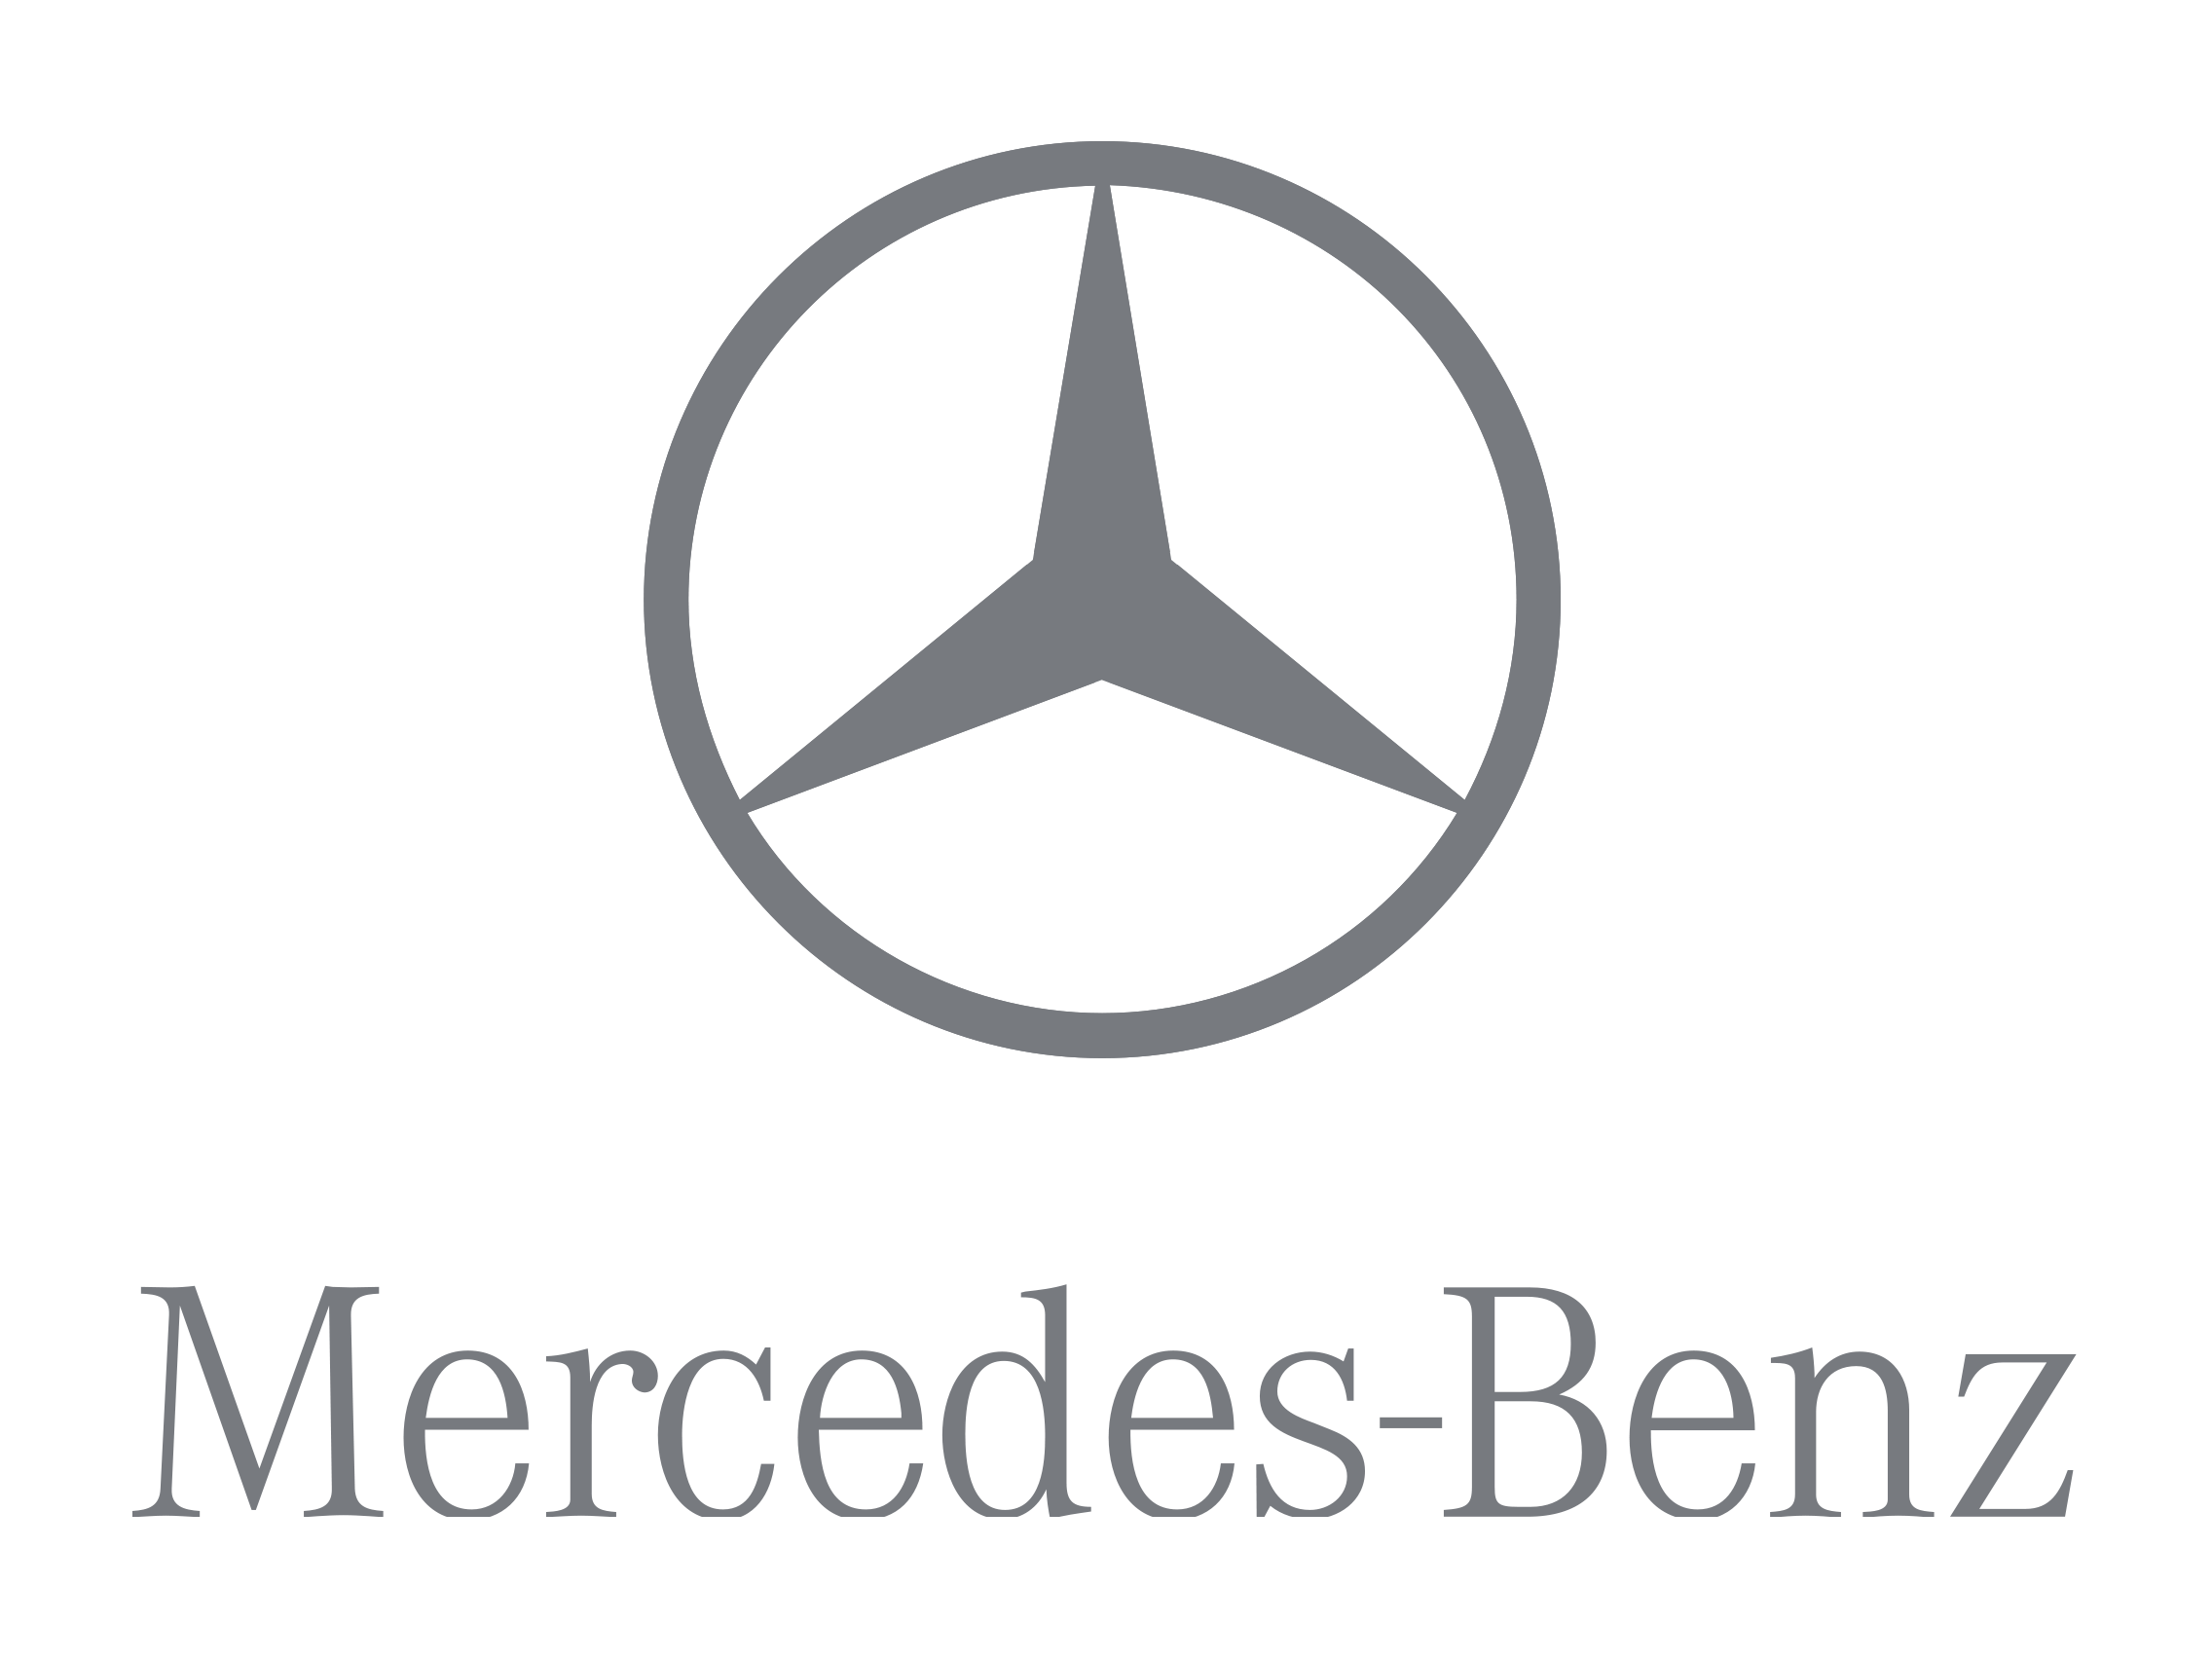 Now you can download Mercedes PNG Image Without Background